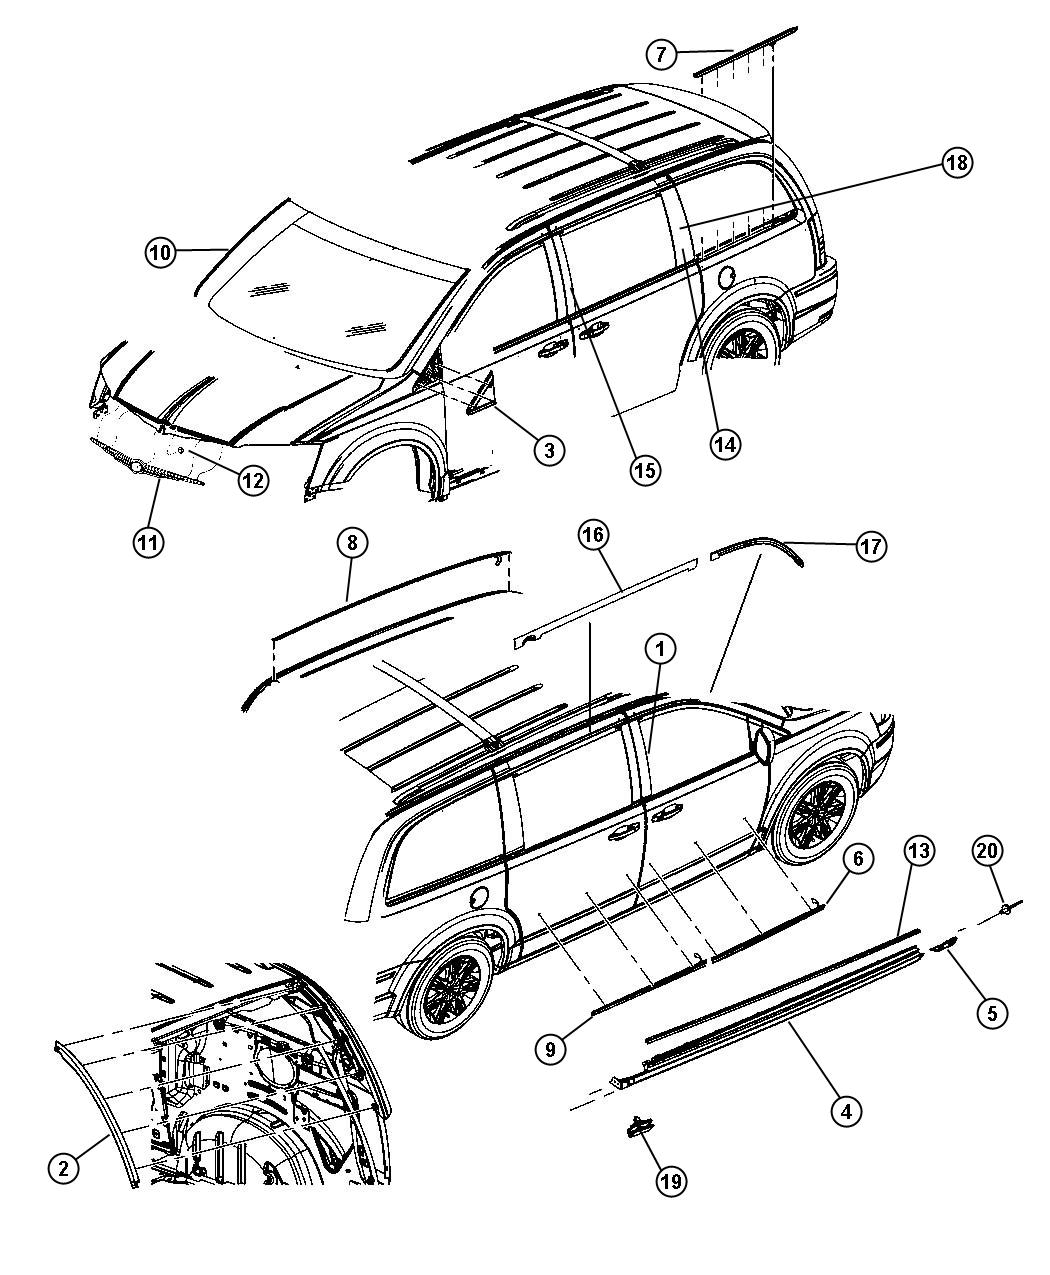 360103 2010 Dodge Journey Fuel Filter moreover 1997 Toyota Camry V6 Firing Order Diagram Html furthermore Hyundai Entourage Parts together with Rcbo Schematic Diagram together with Automobiles. on dodge caravan diagram